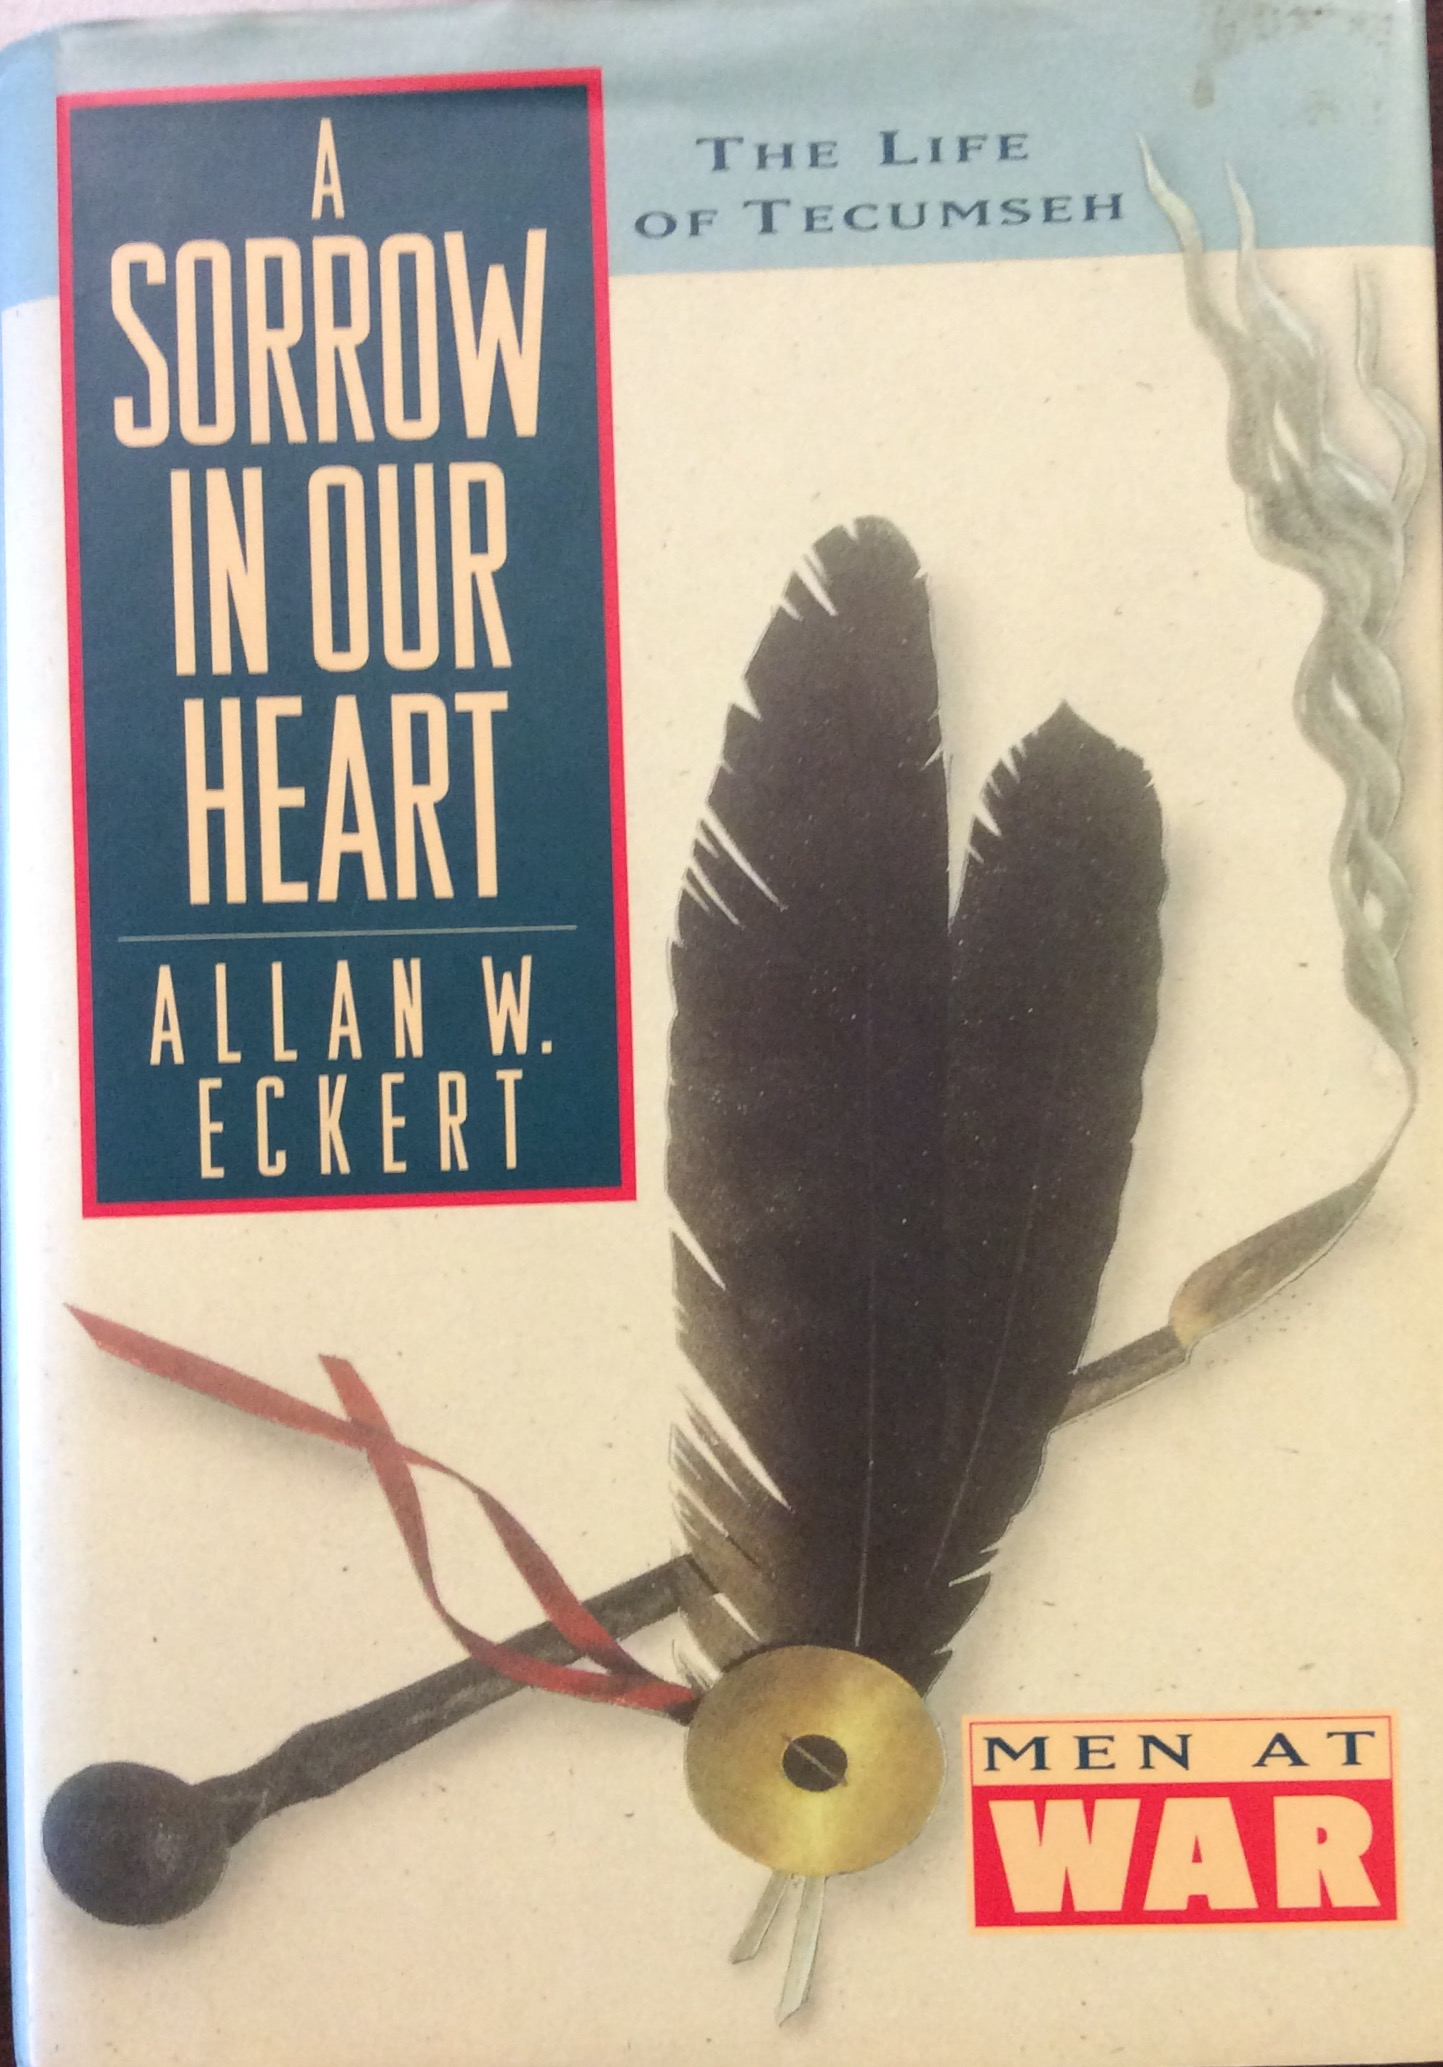 Image for A Sorrow in Our Heart: The Life of Tecumseh